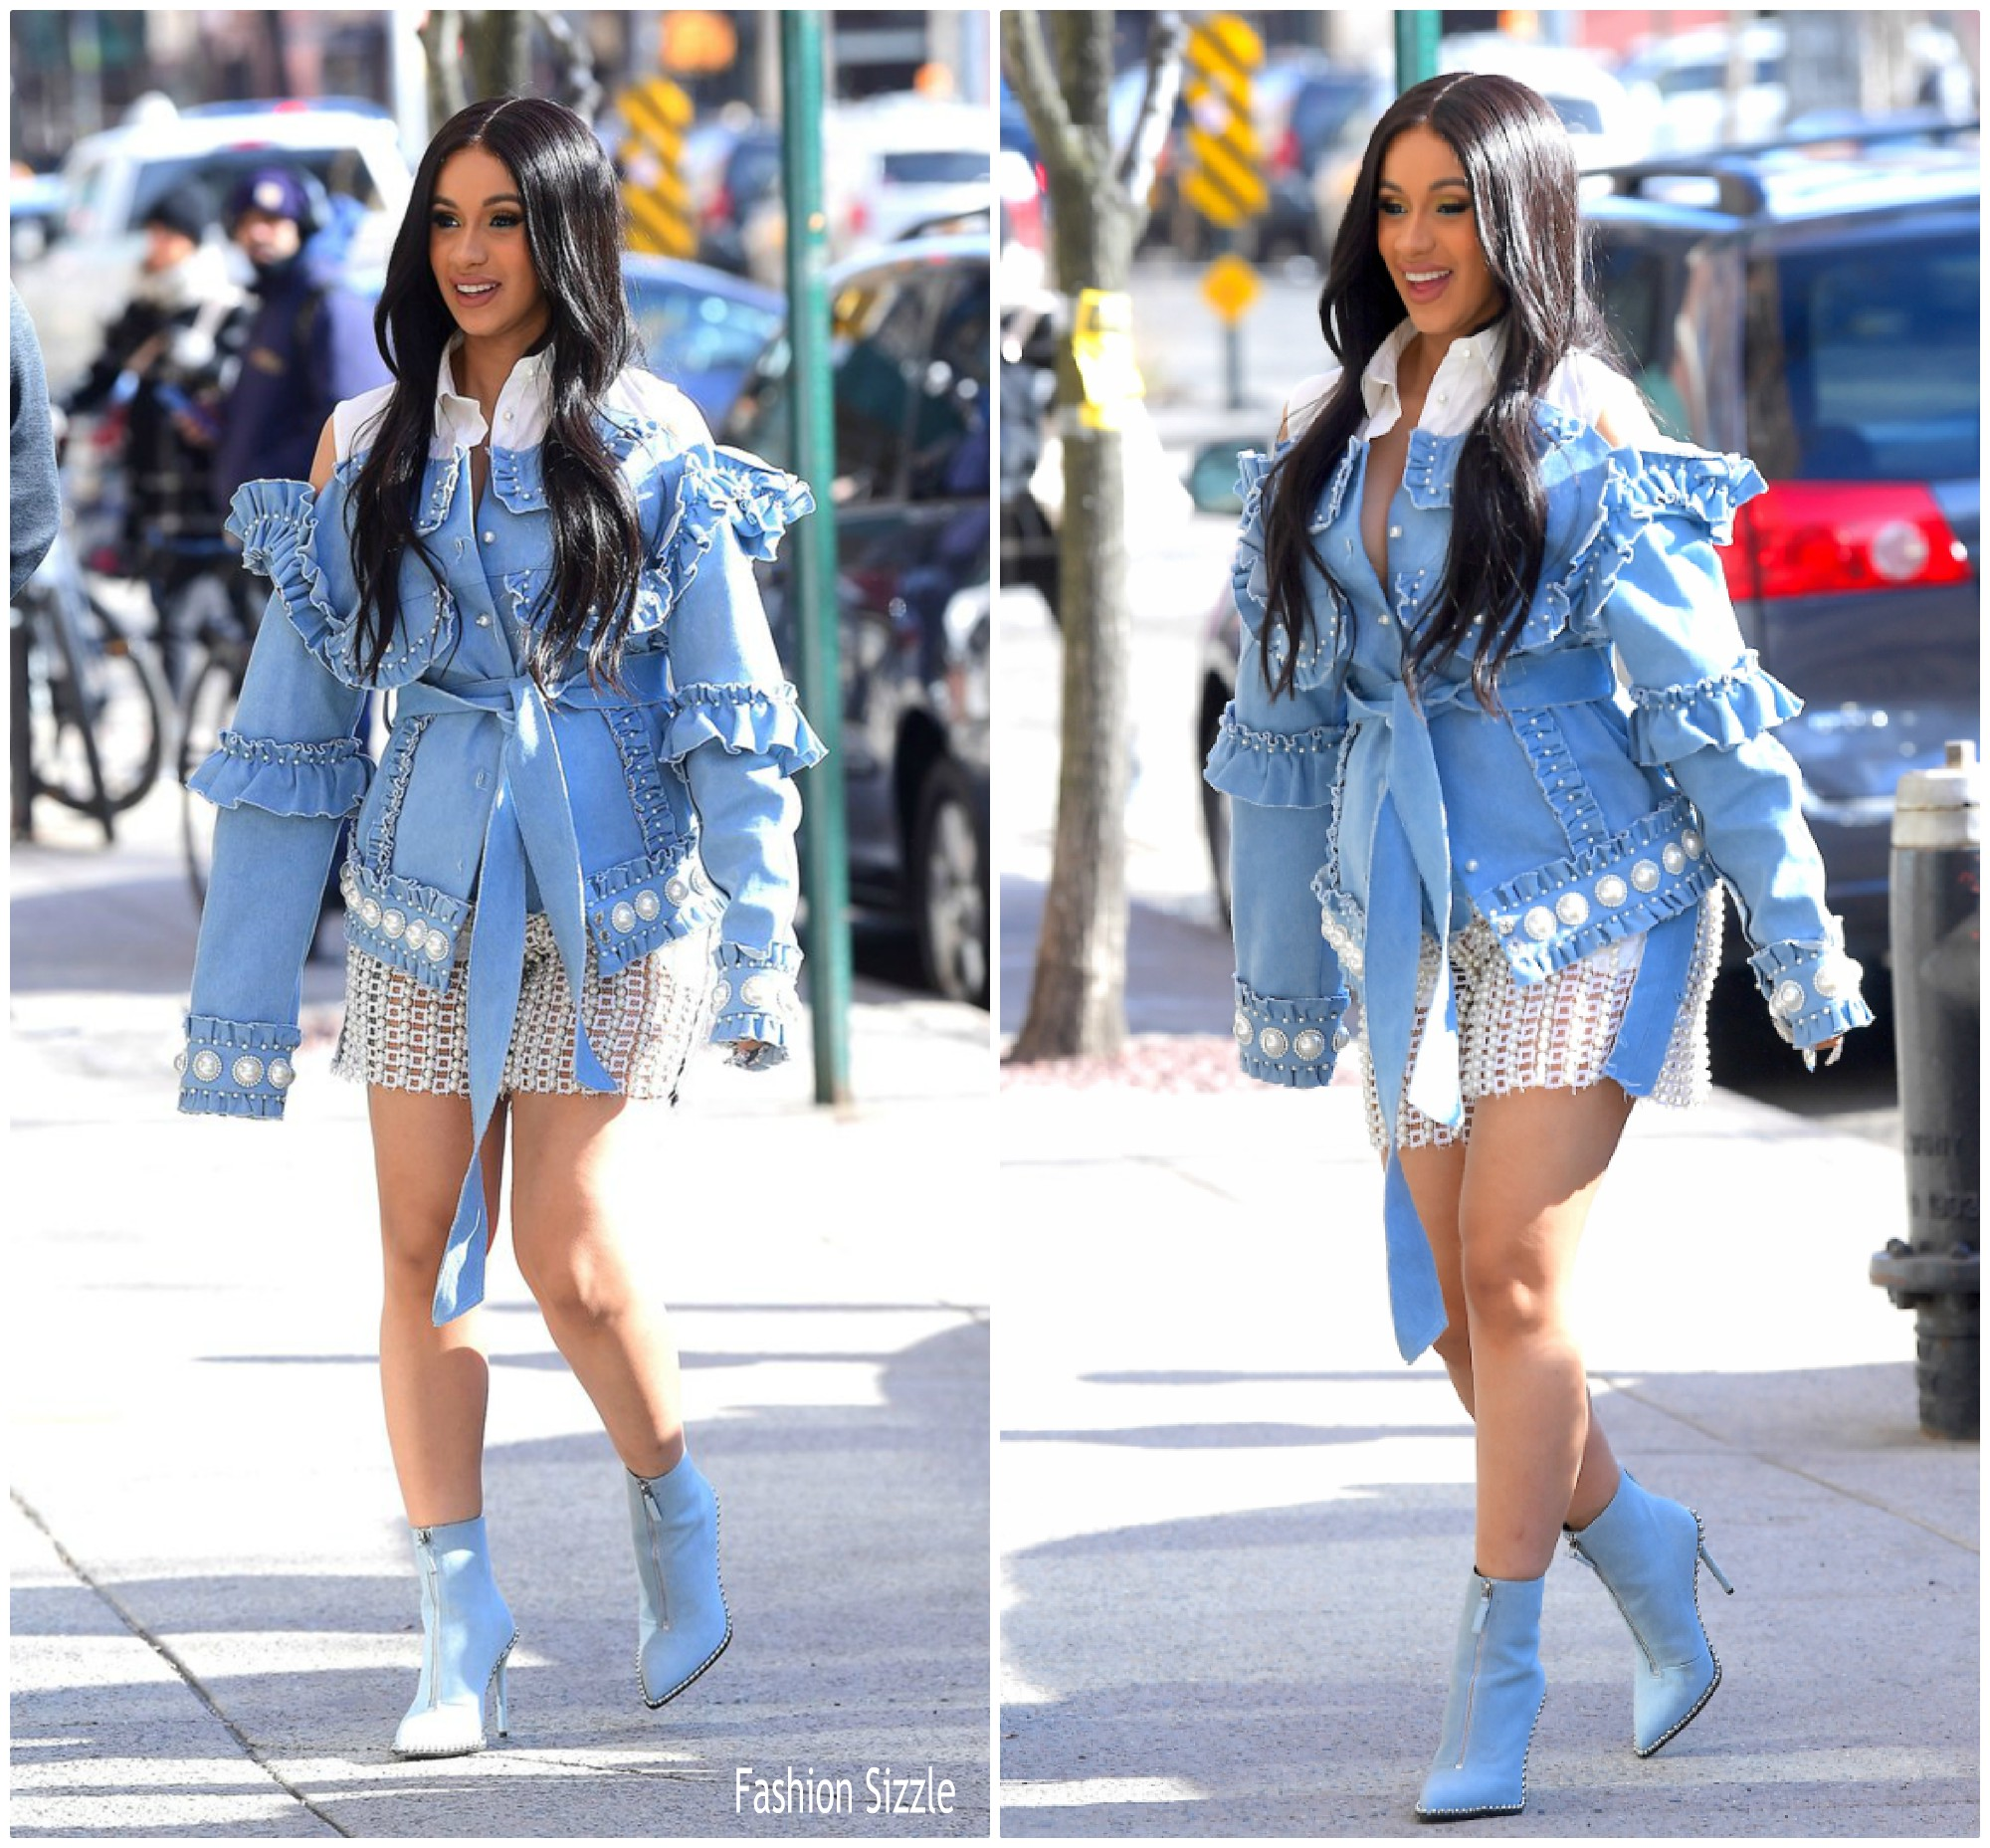 Cardi B In The Laurence Chico Out In New York Fashionsizzle